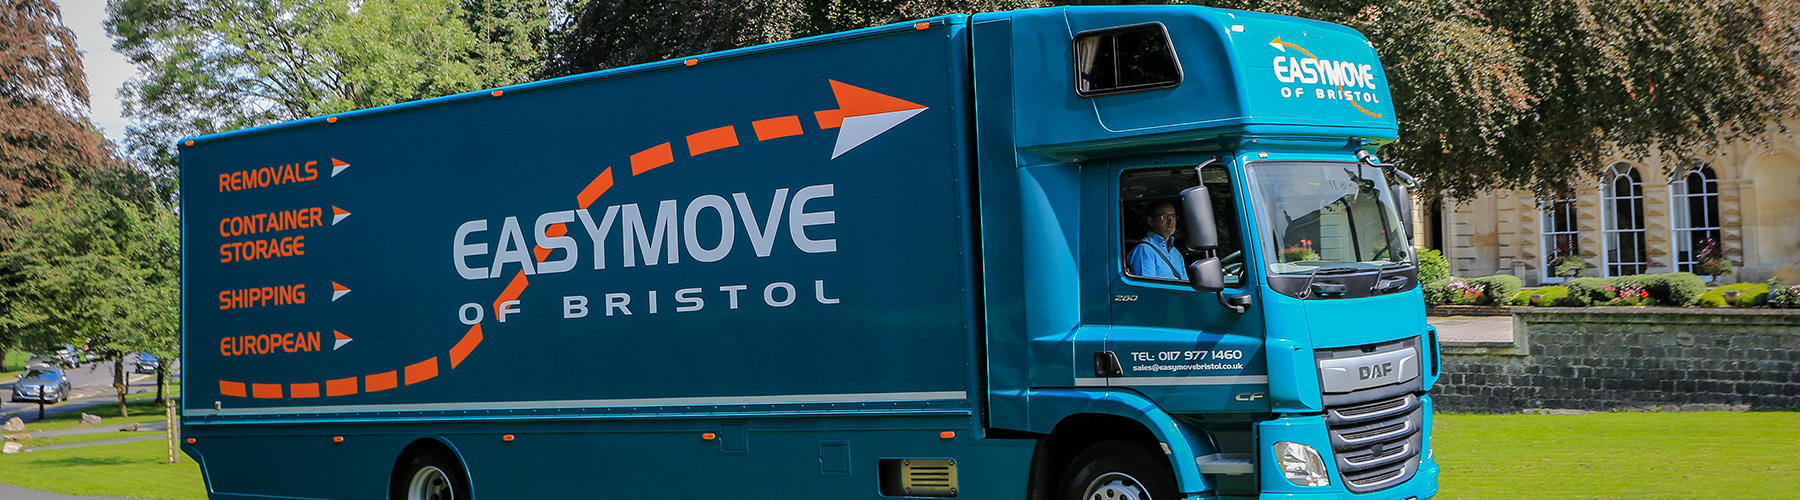 Easymove Bristol | Home Removals | About Us | Footer